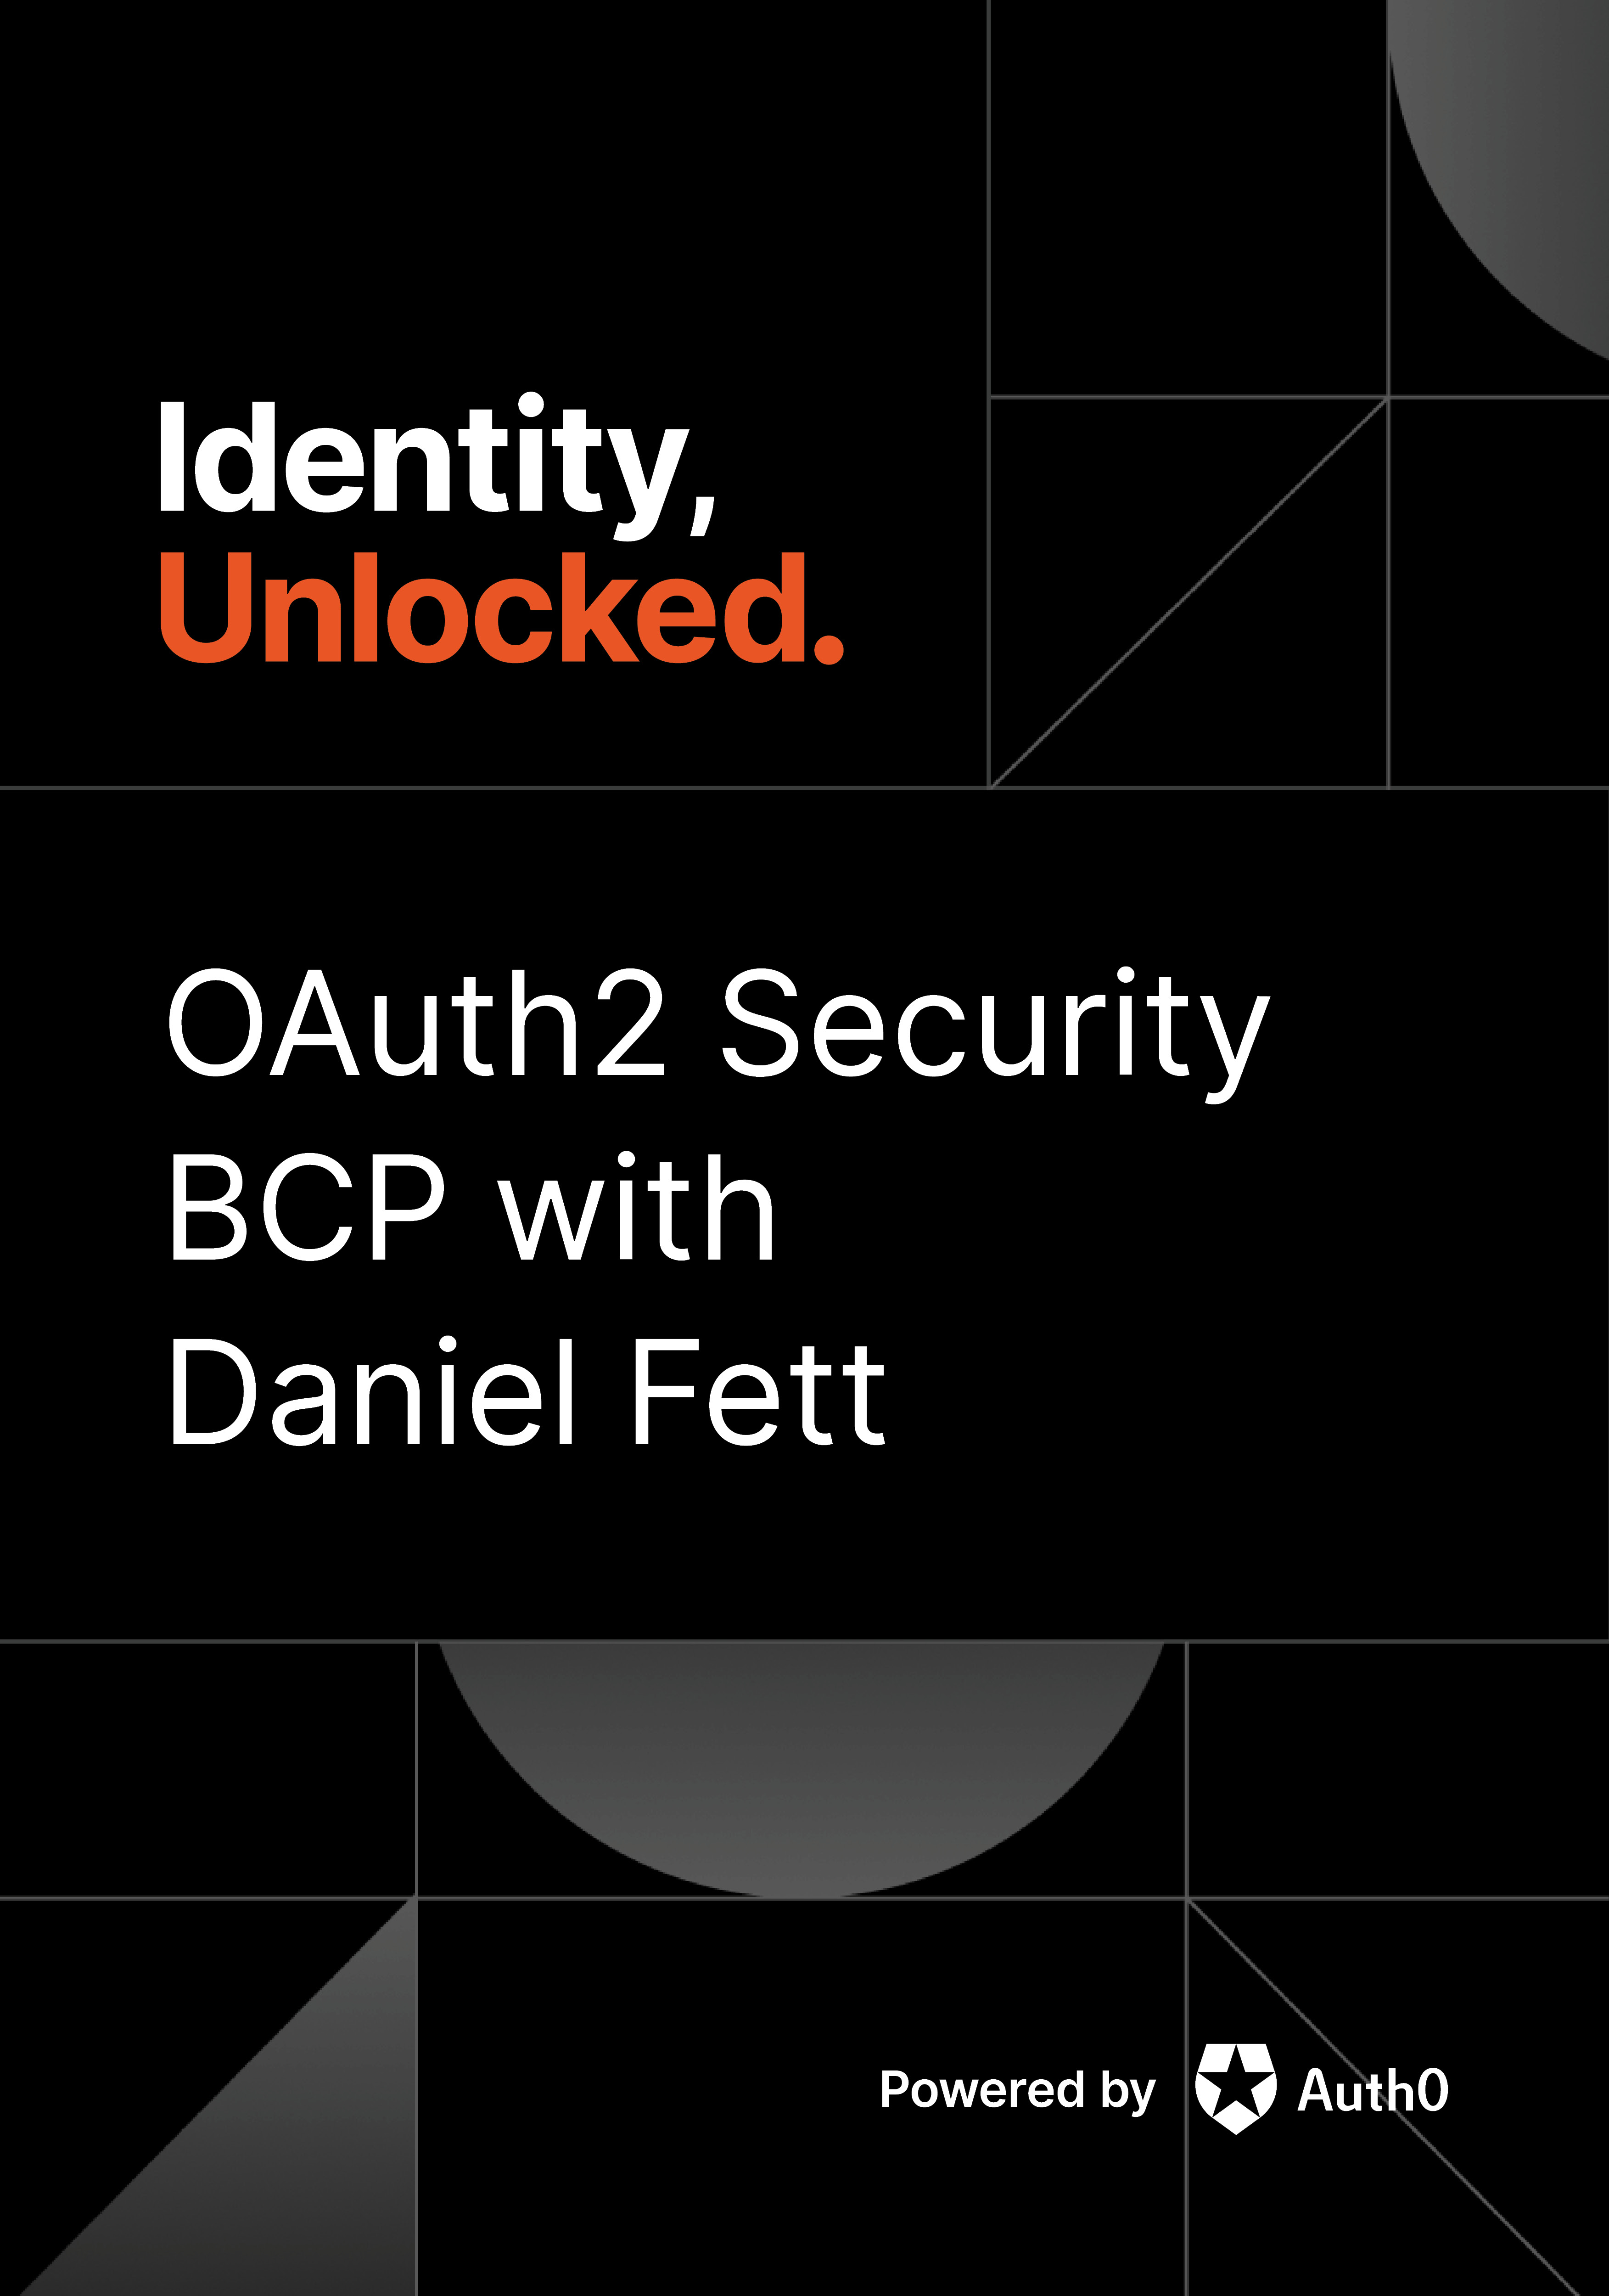 A Lap Around the OAuth2 Security BCP with Daniel Fett